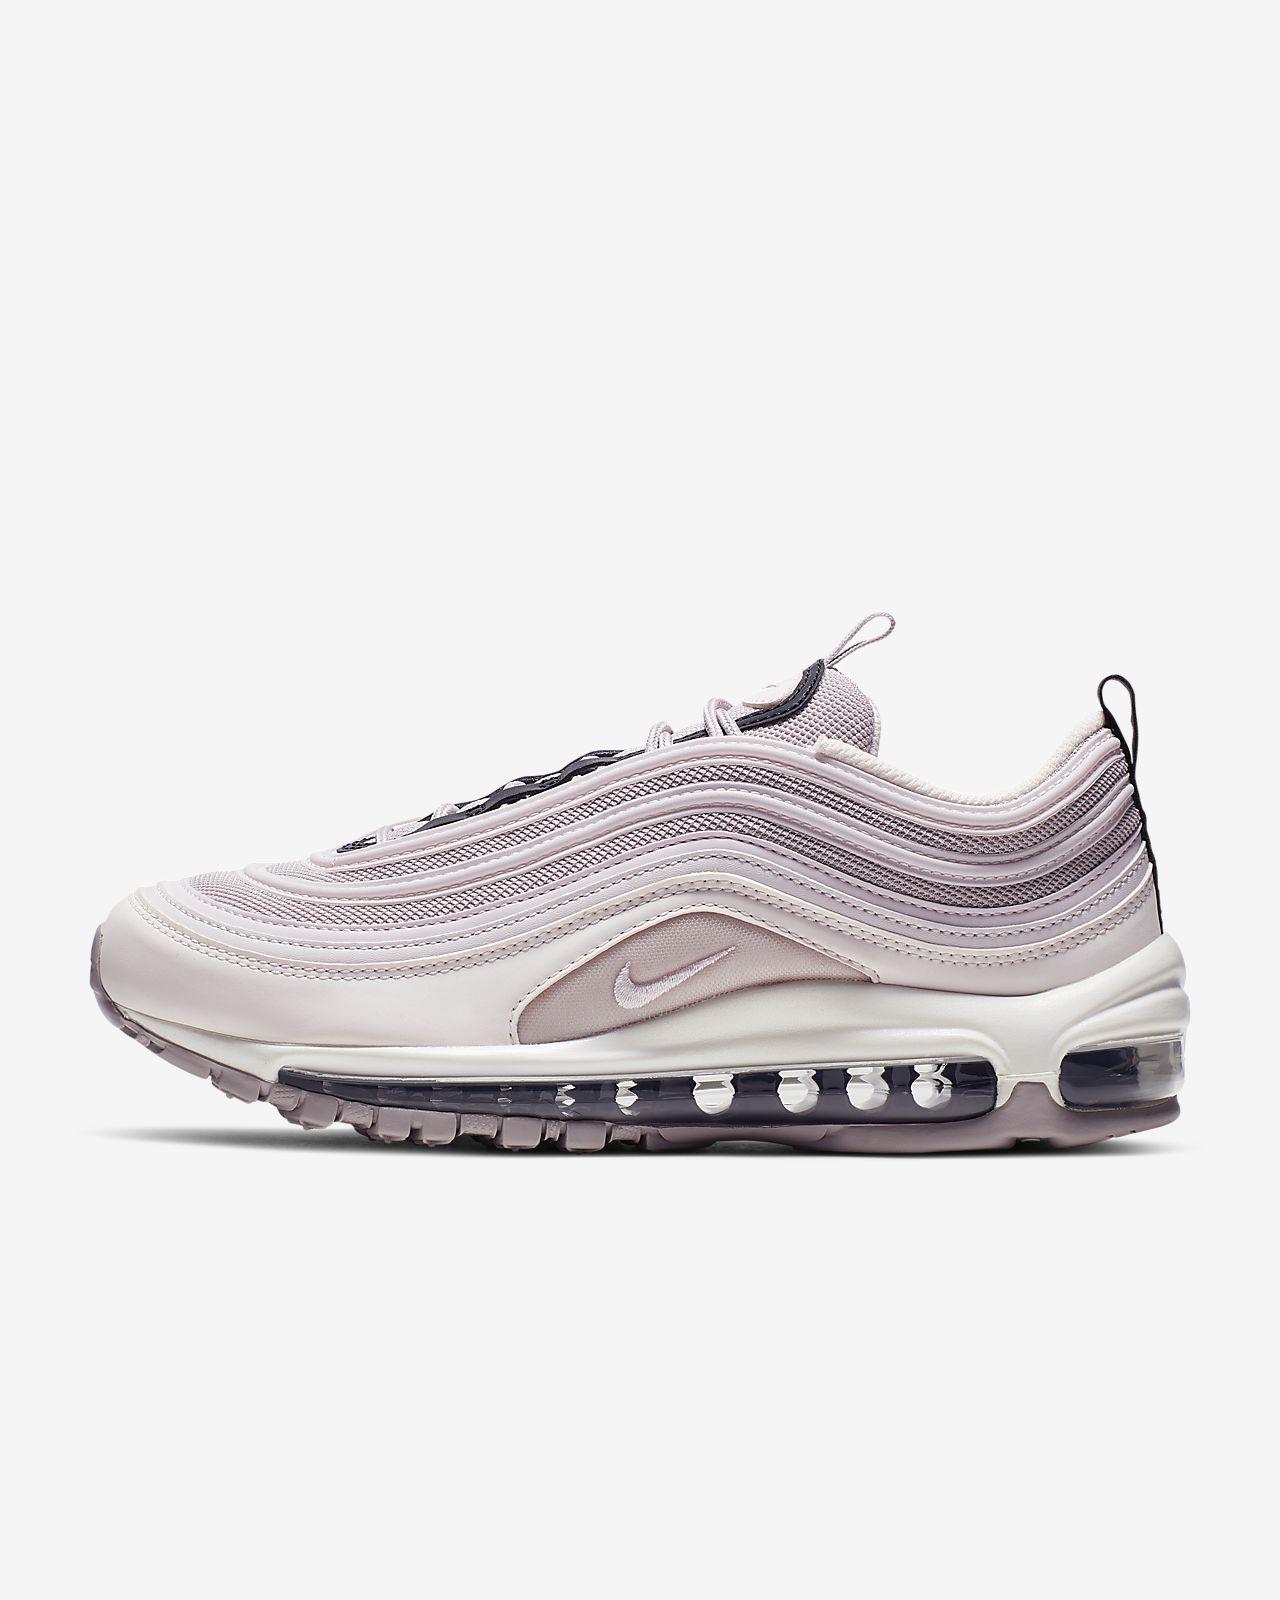 official photos 5bb51 7cd4f ... Nike Air Max 97 Women s Shoe